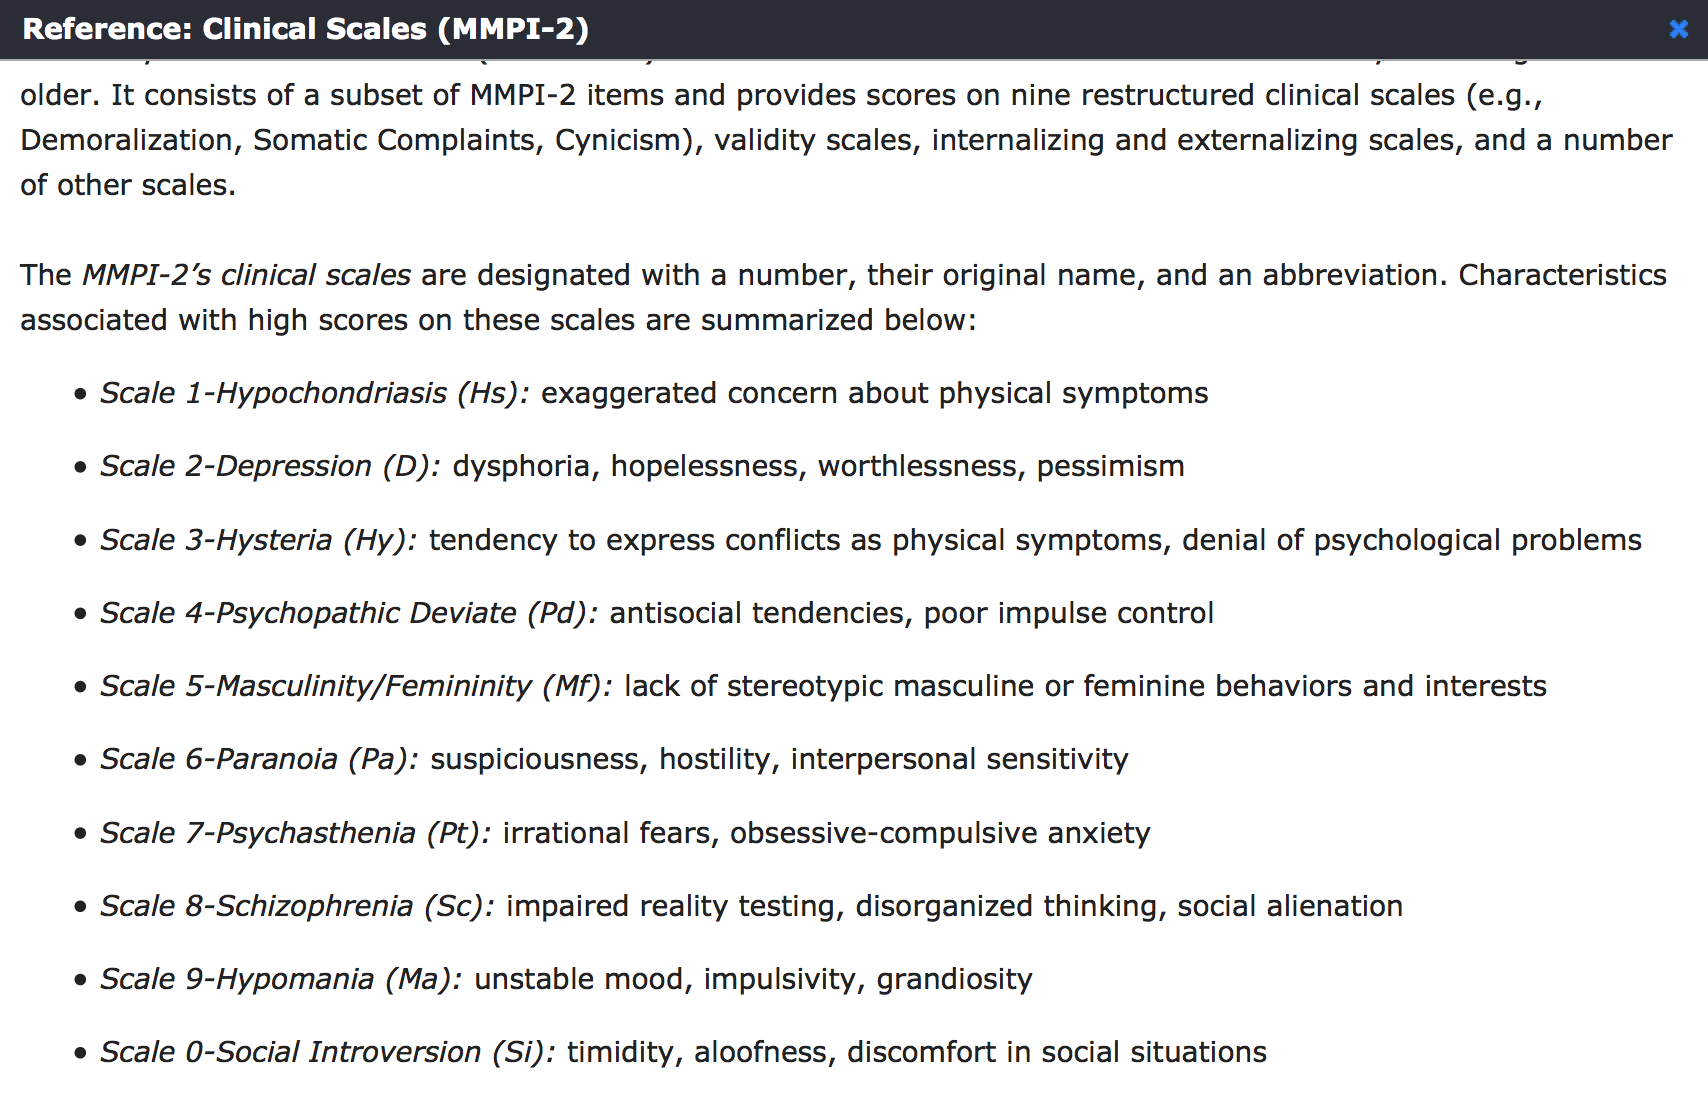 Clinical Scales Of Mmpi  Eppp Psychology Studies